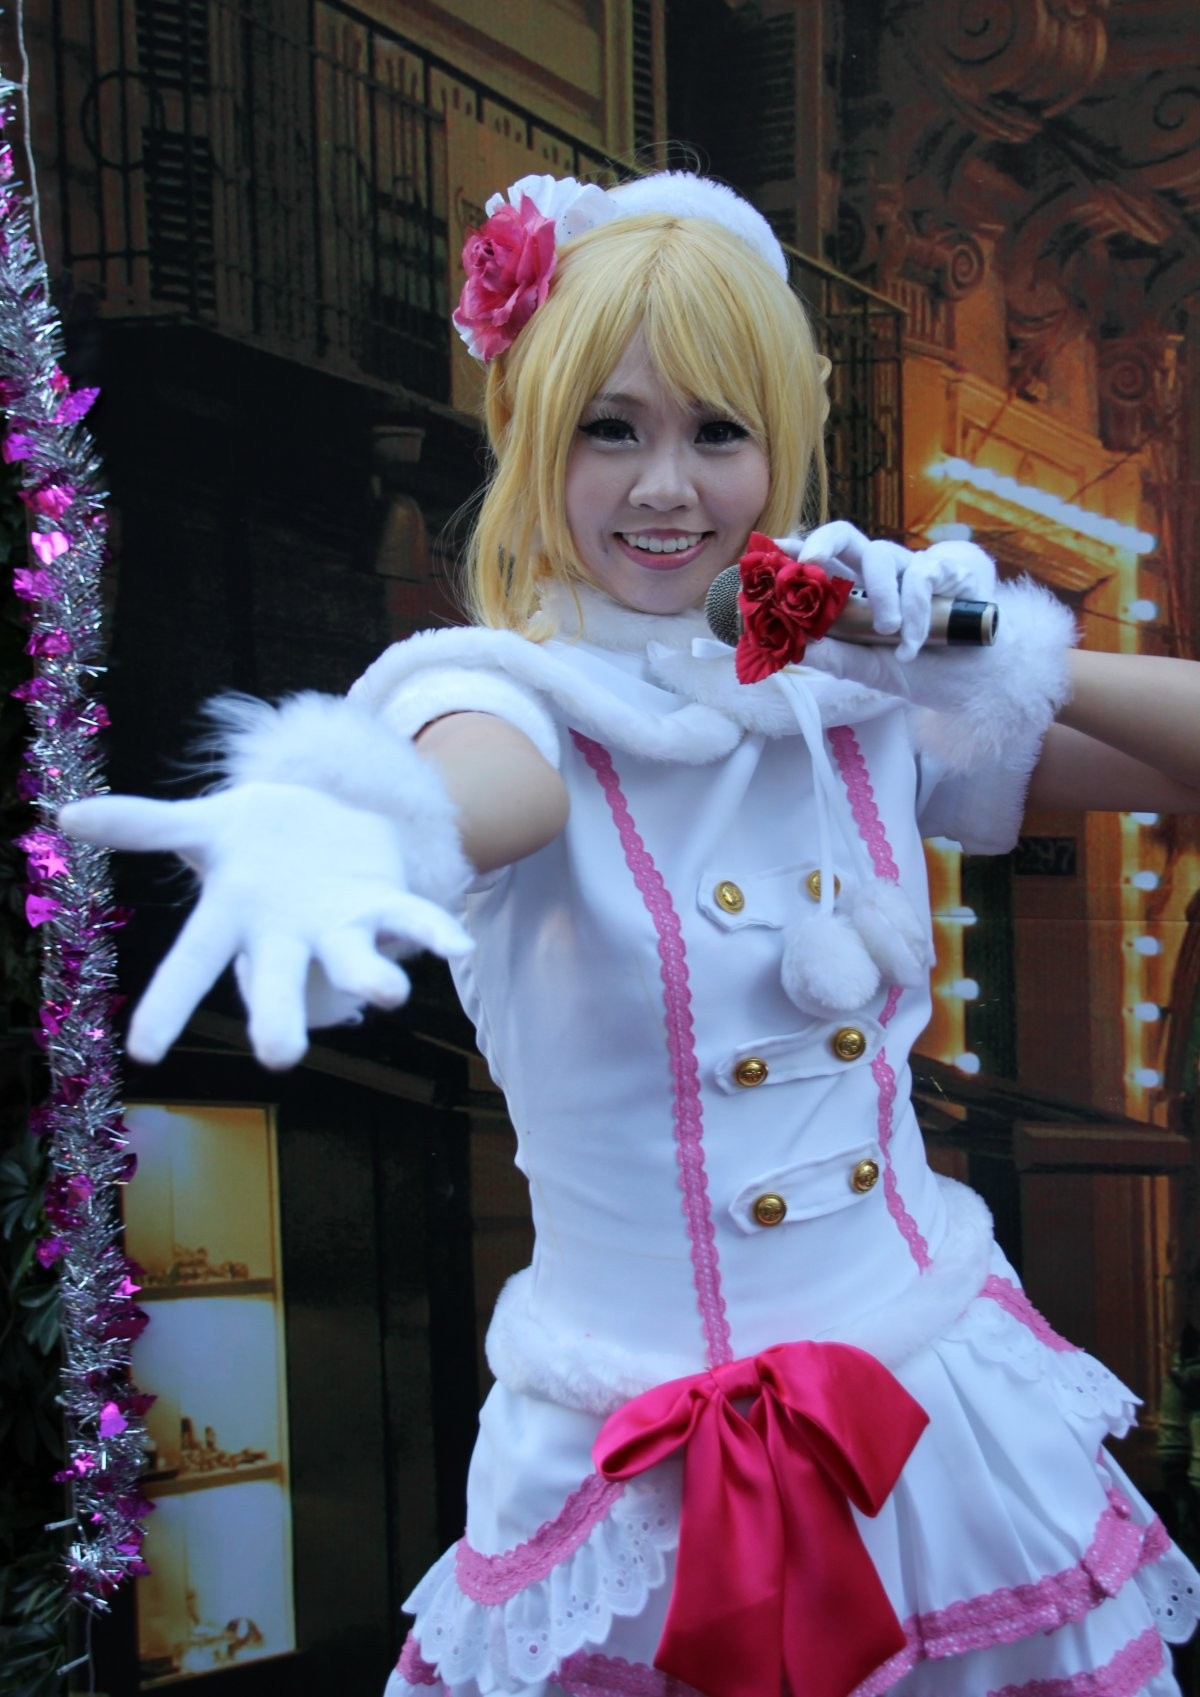 Bangkok - Cosplay / Festival J-Trends in Town am MBK I